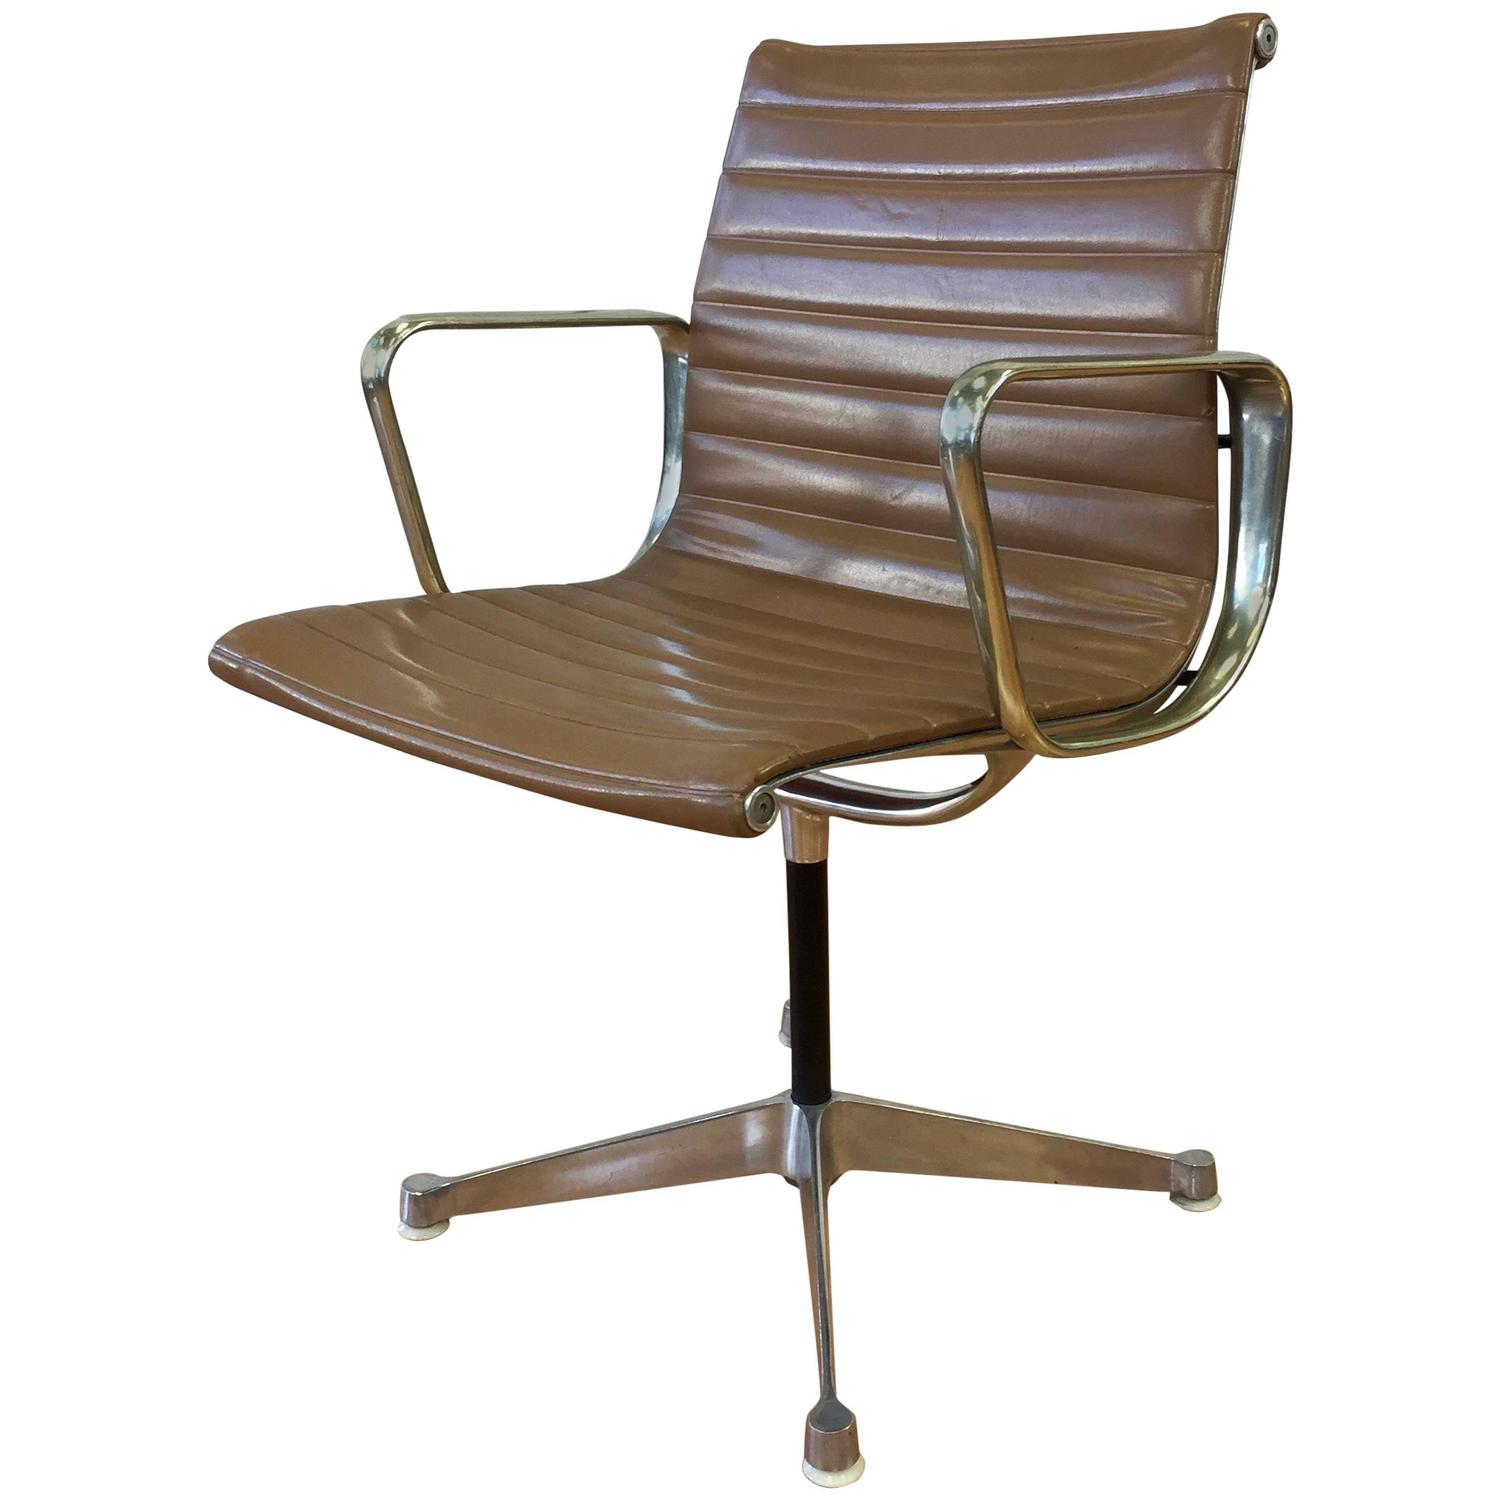 early eames aluminium group management chair by herman miller for sale at 1stdibs. Black Bedroom Furniture Sets. Home Design Ideas